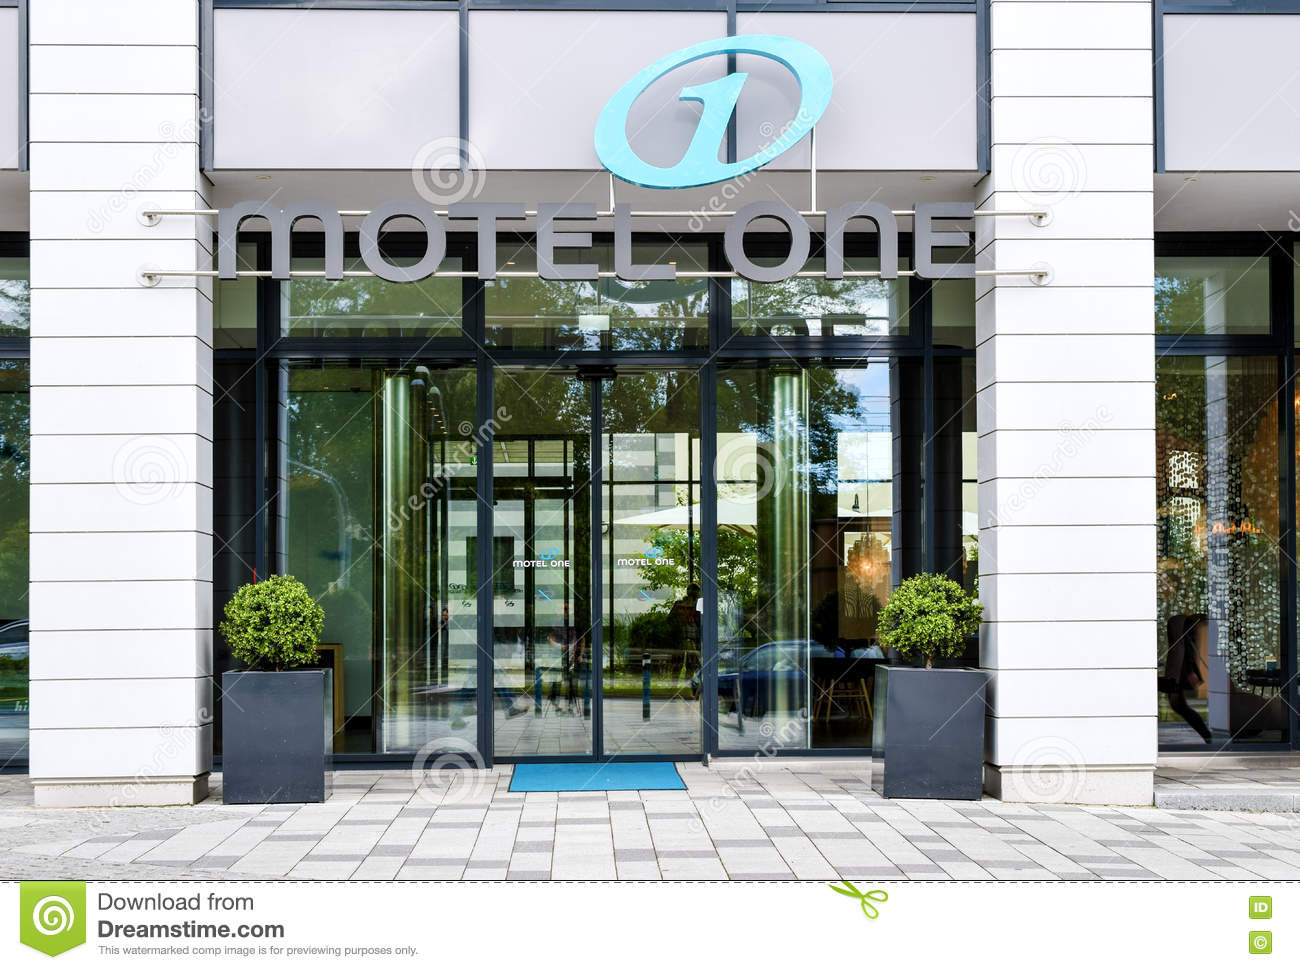 Rostock germany august 22 2016 motel one low budget for Low budget hotel